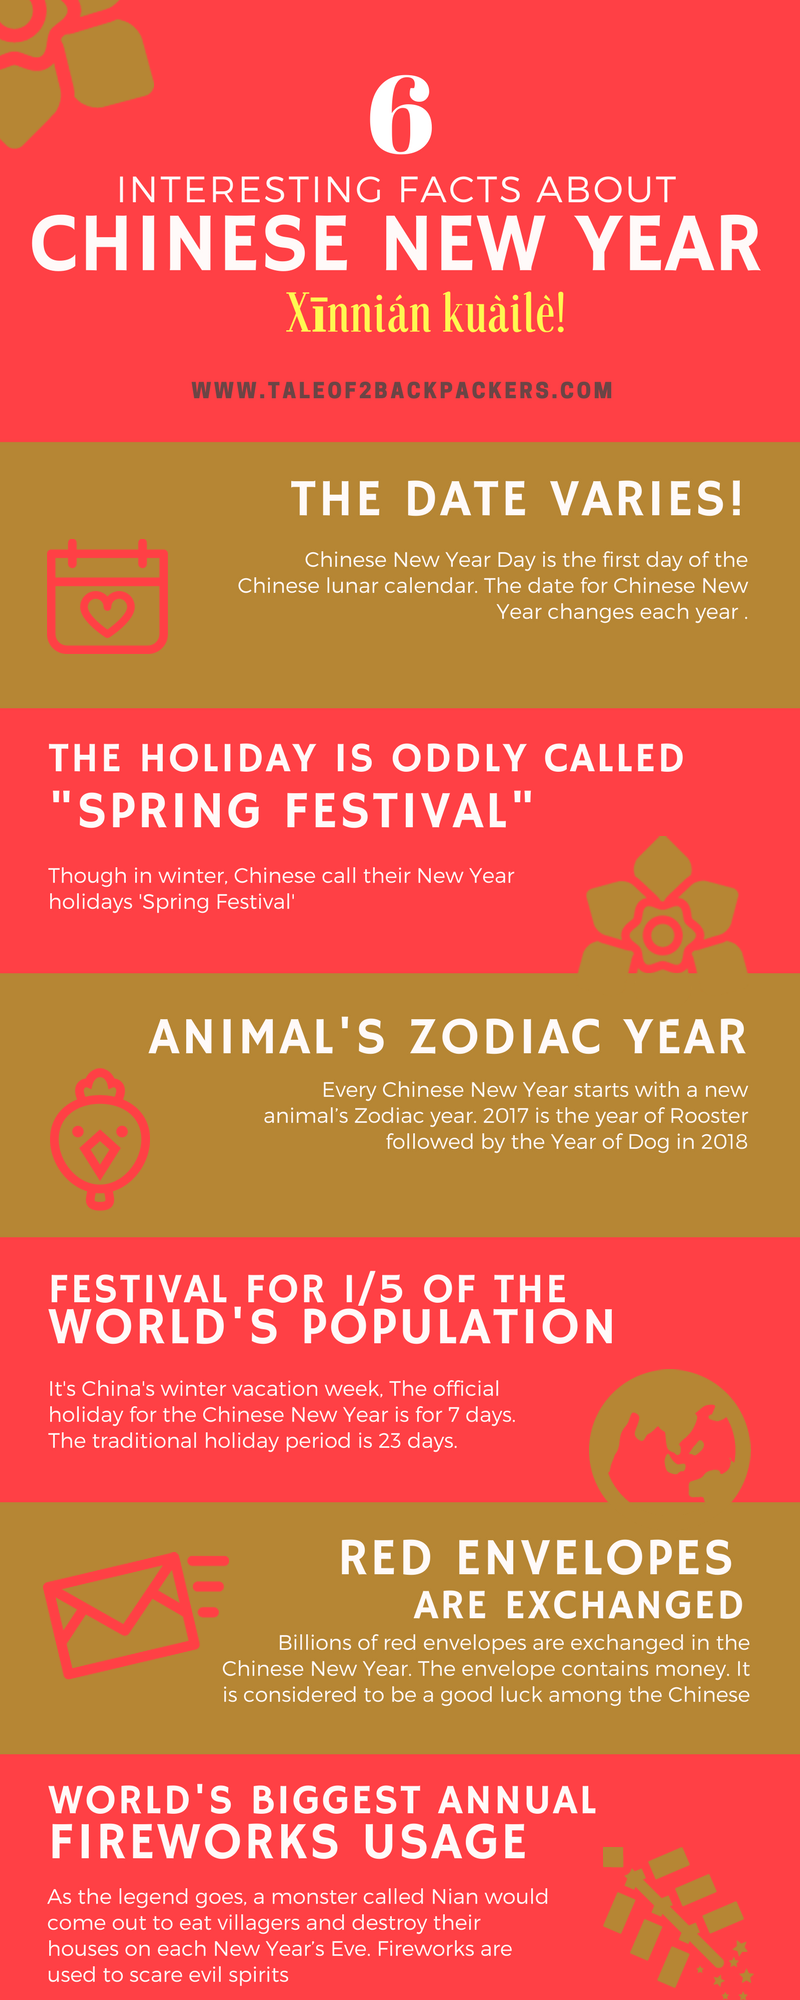 Interesting Facts About The Chinese New Year Tale Of 2 Backpackers